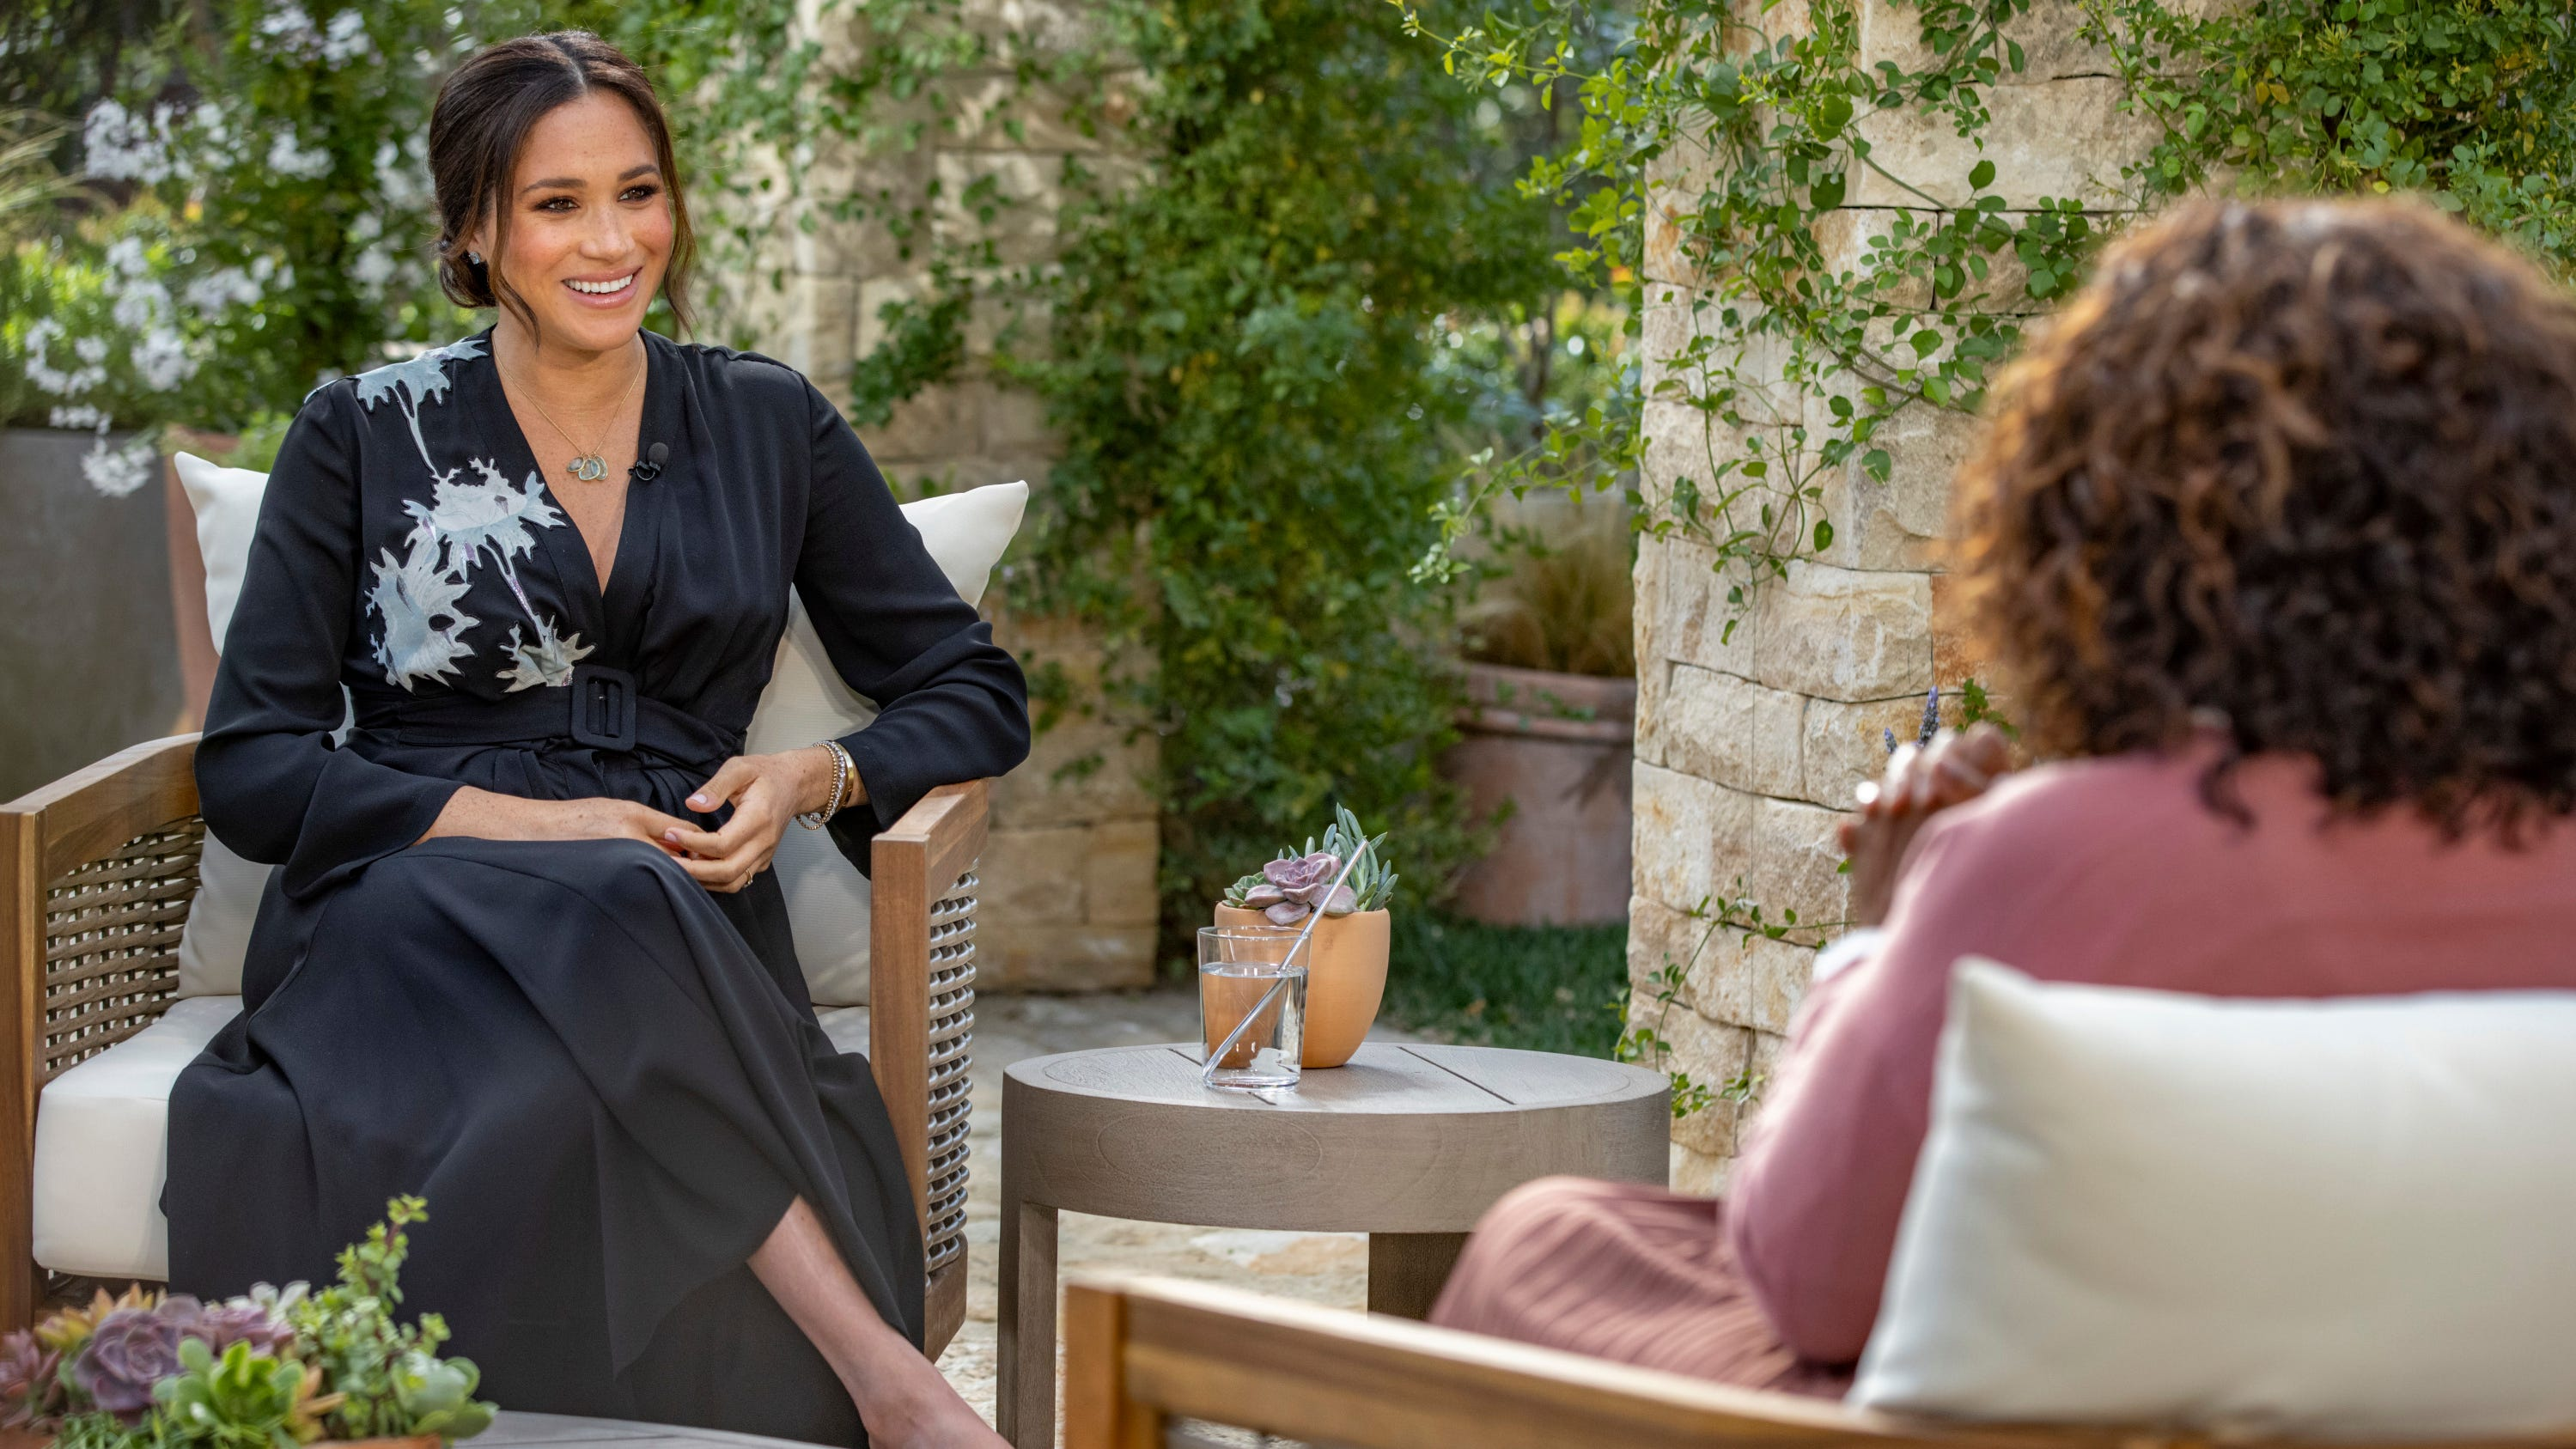 Meghan, Duchess of Sussex, left, speaking with Oprah Winfrey during an interview.